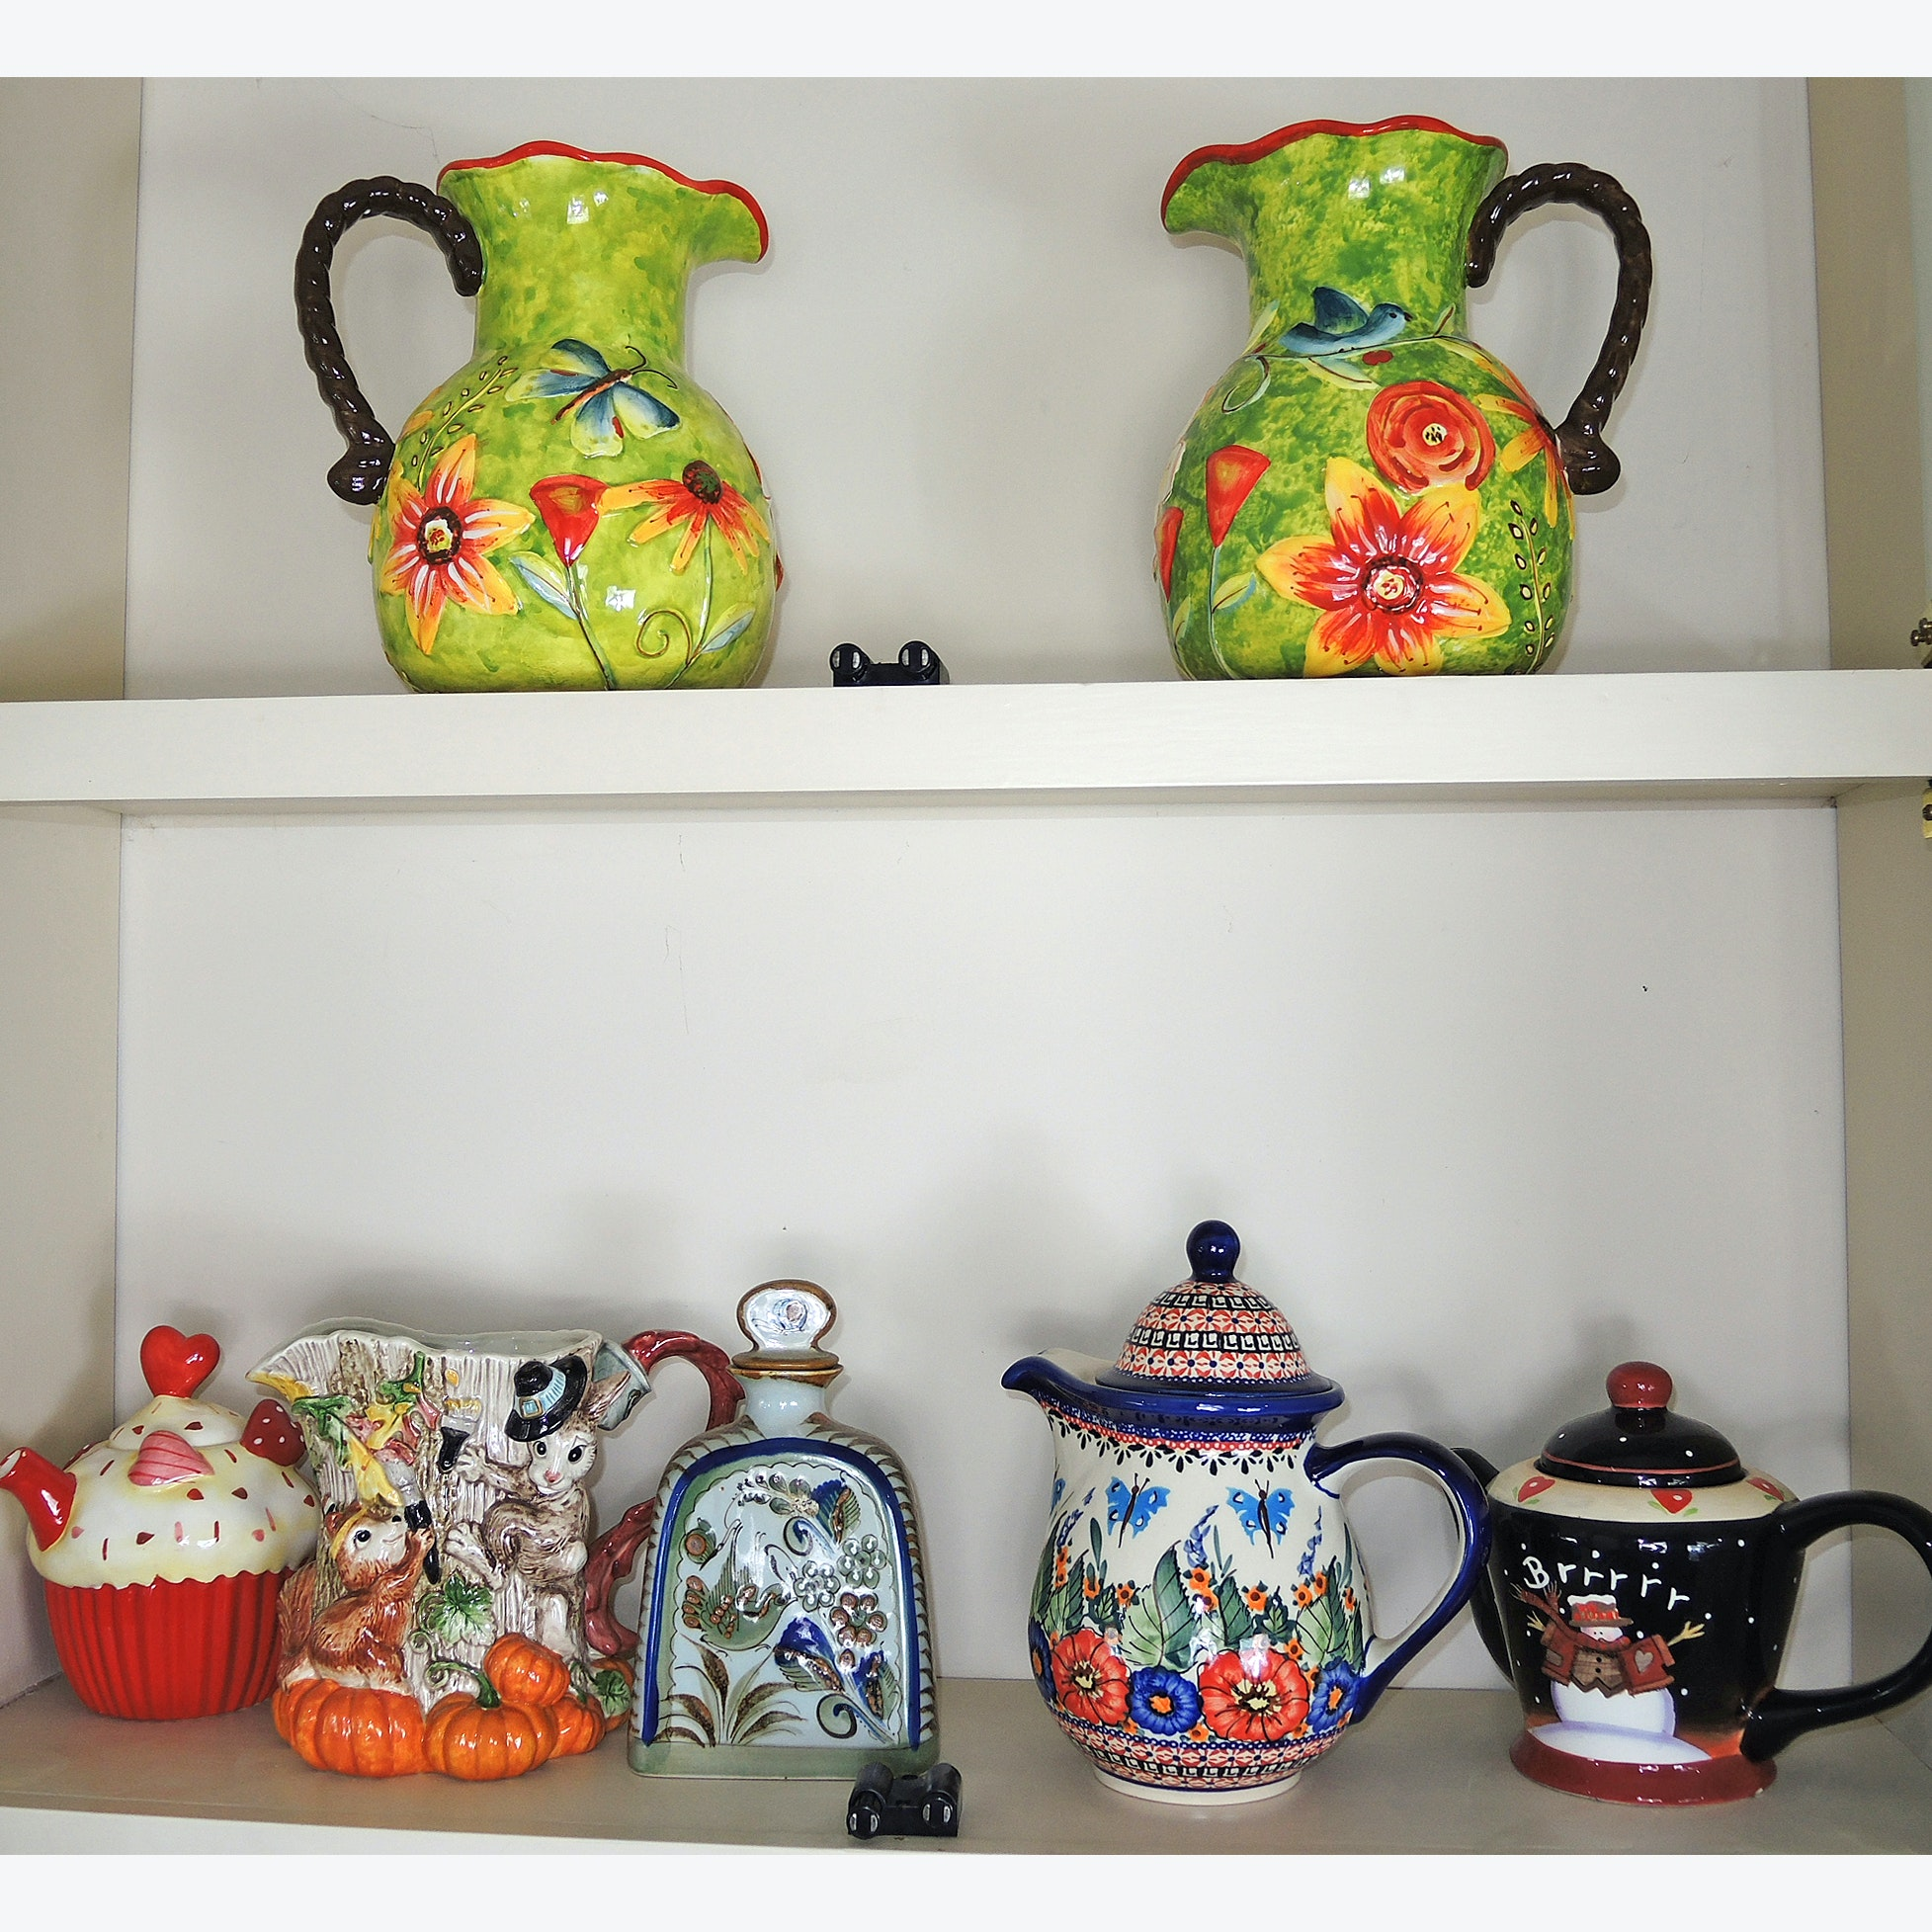 Ceramic Pitcher and Tea Pot Collection with Polish Pottery